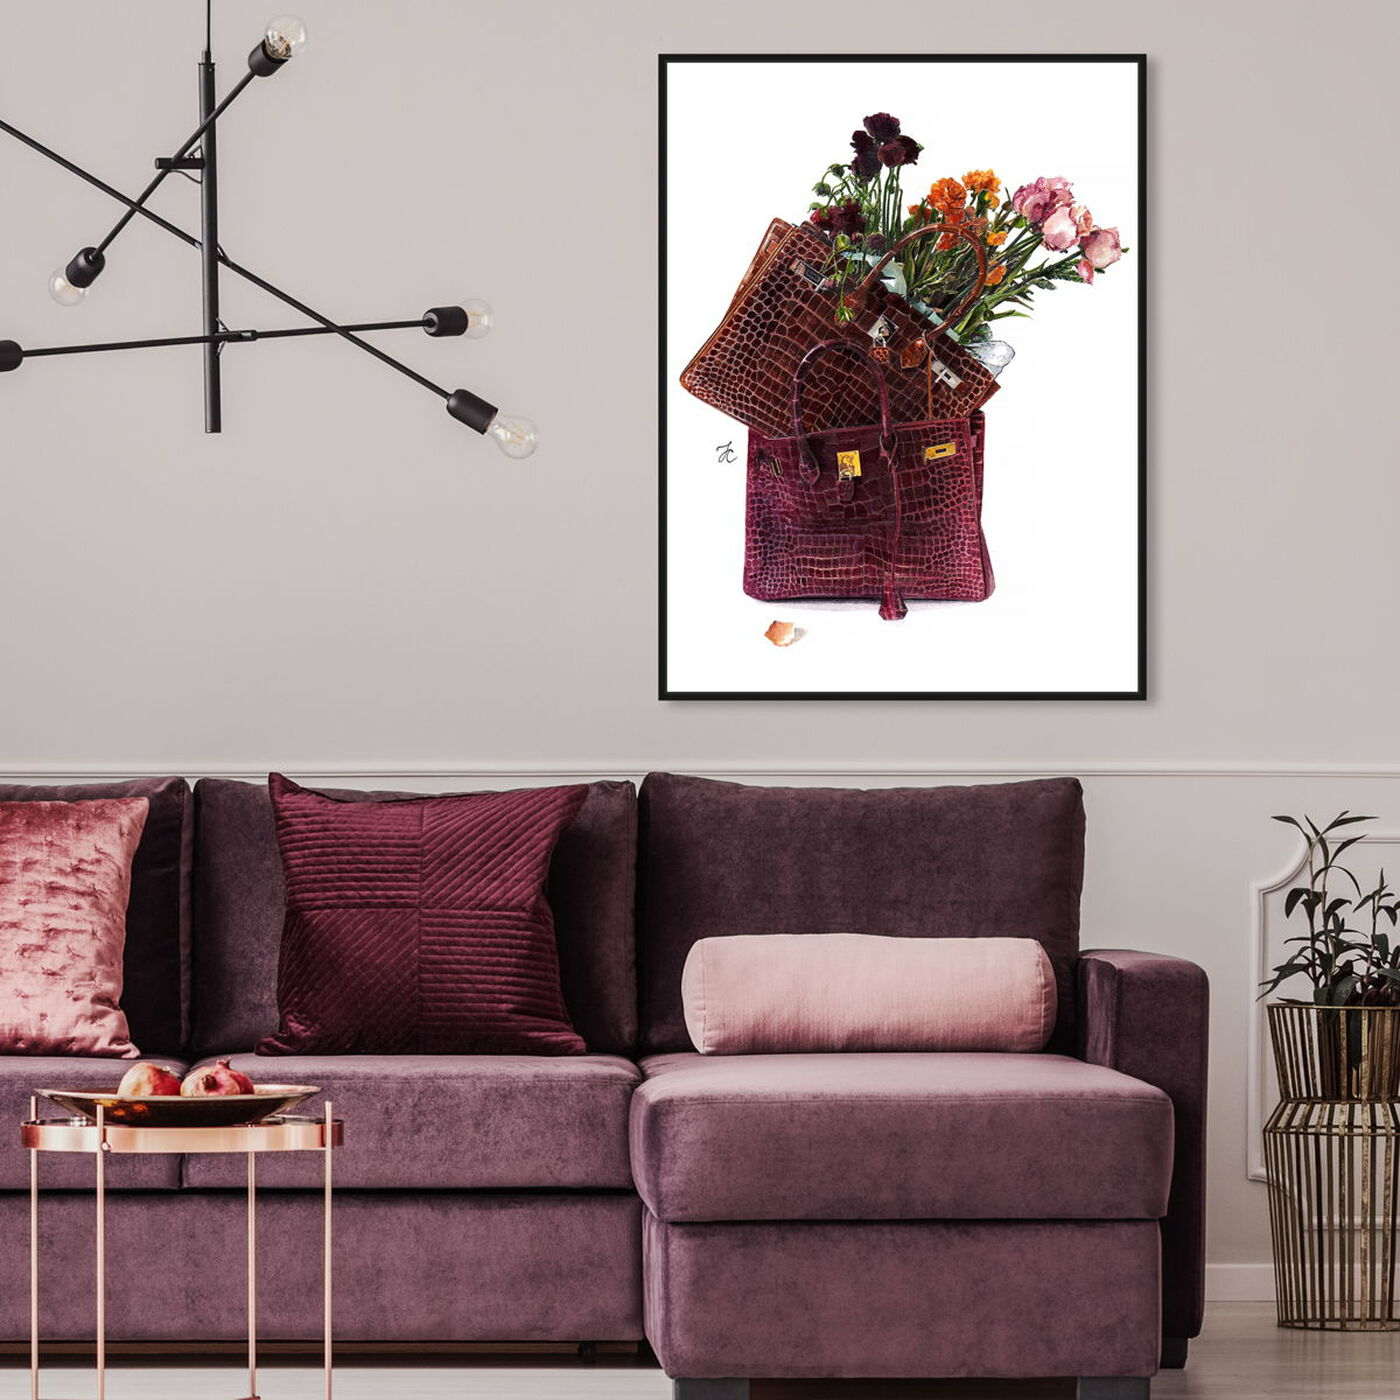 Hanging view of Doll Memories - Flowers featuring fashion and glam and handbags art.